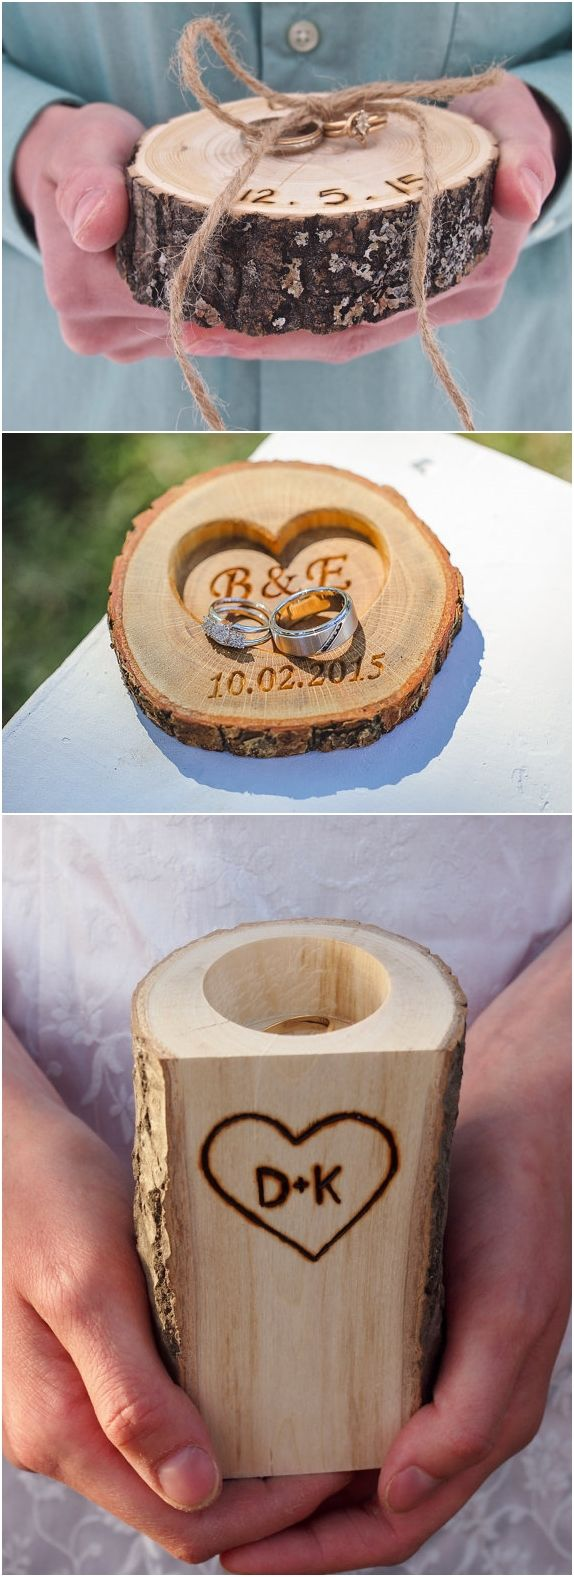 rustic tree stump wedding ring holder ideas / http://www.deerpearlflowers.com/rustic-woodsy-wedding-trend-tree-stump/ #rustic #rusticwedding #countrywedding #weddingideas